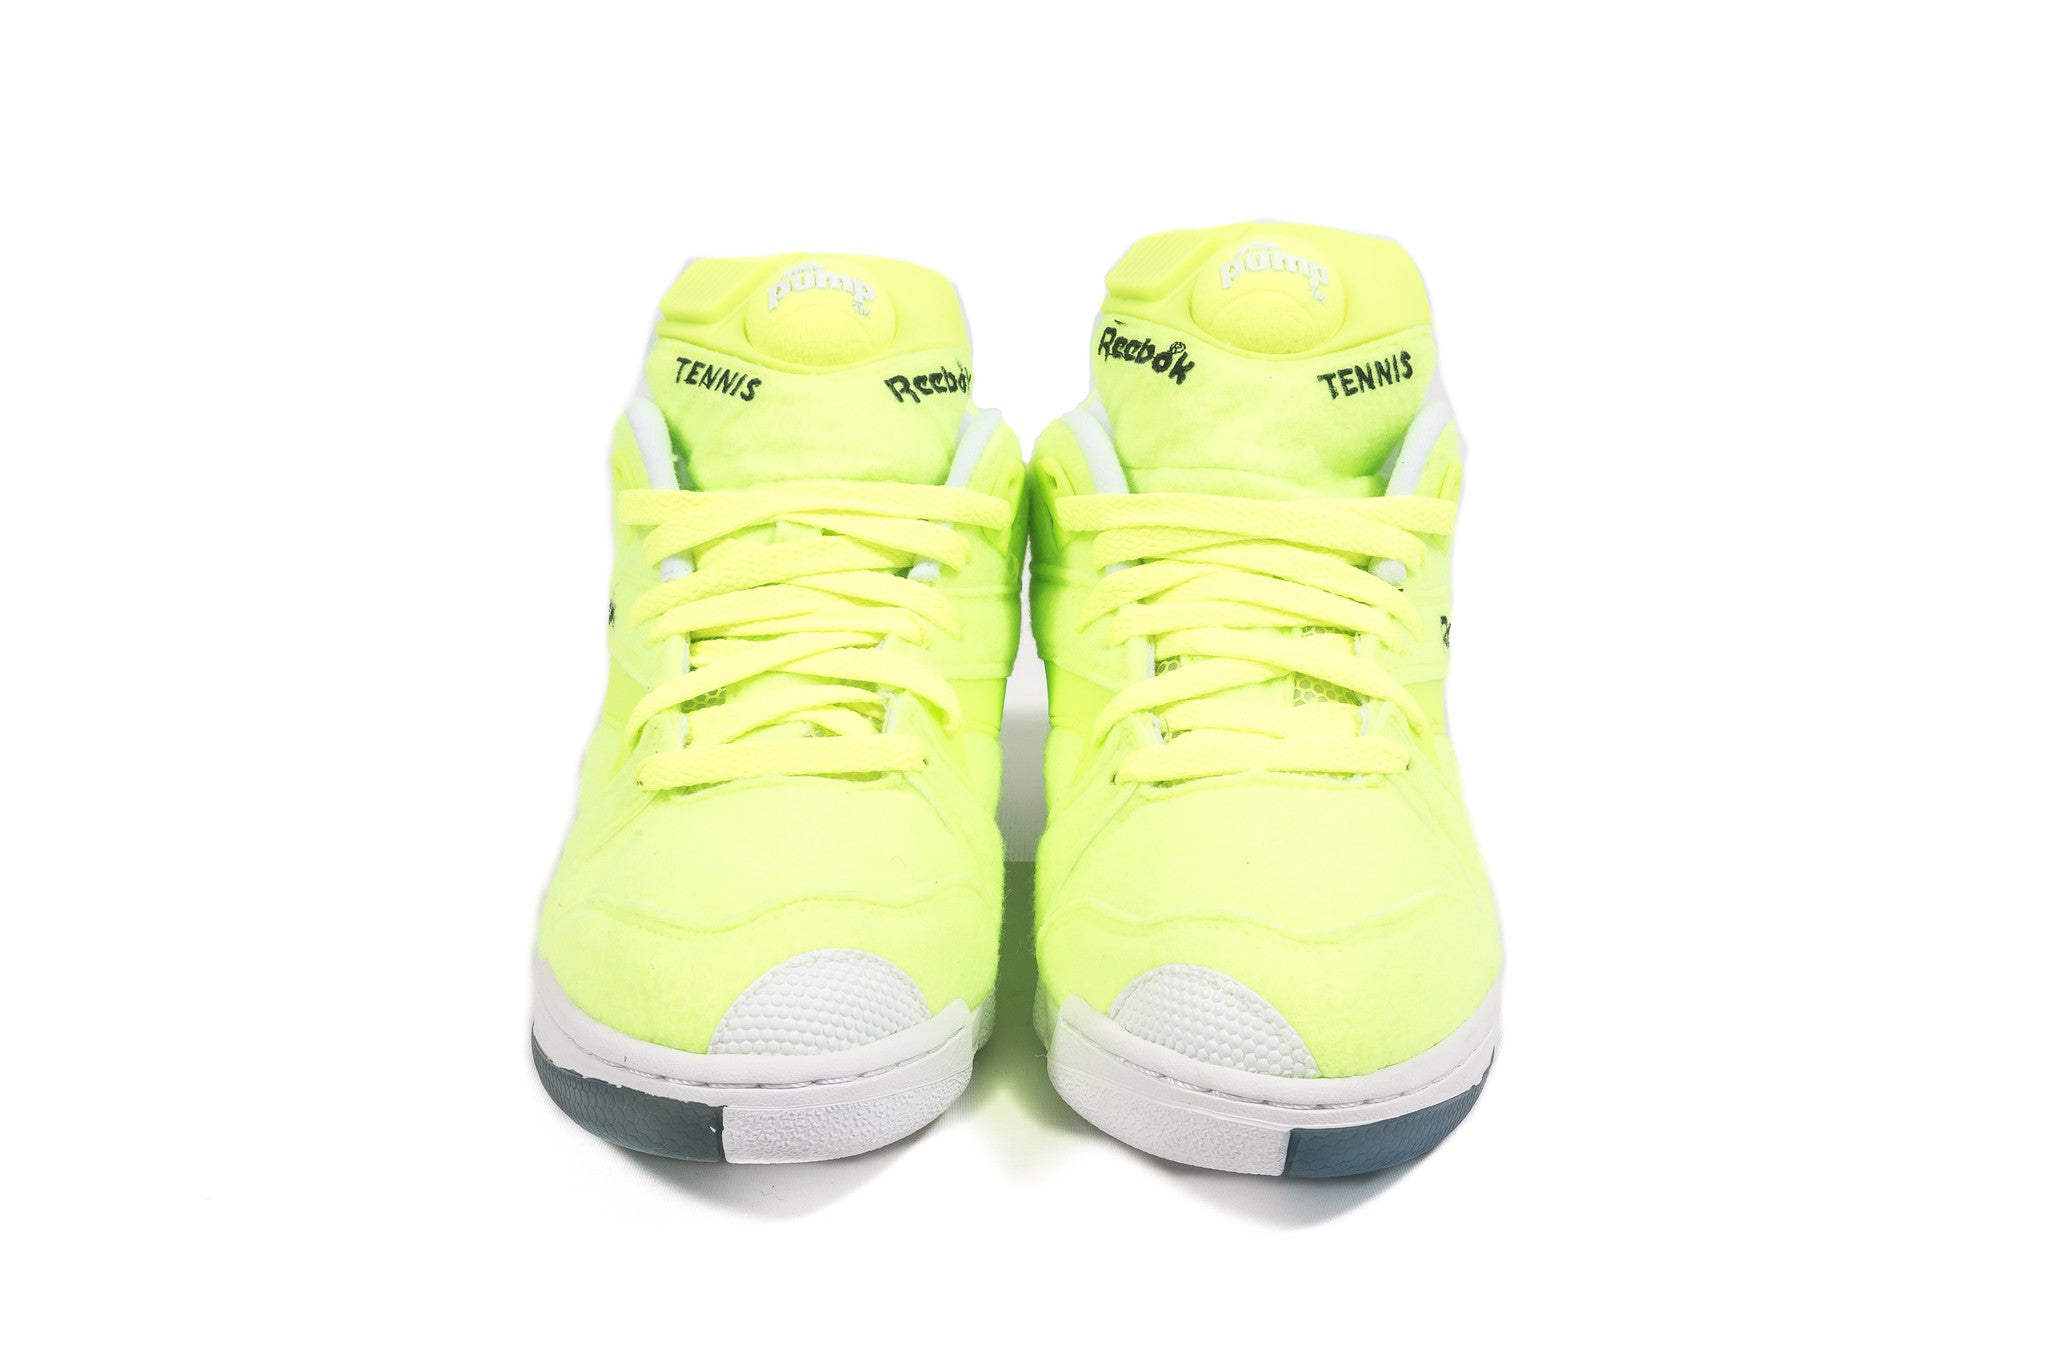 reebok tennis ball shoes cheap   OFF78% The Largest Catalog Discounts 9915c9fb2